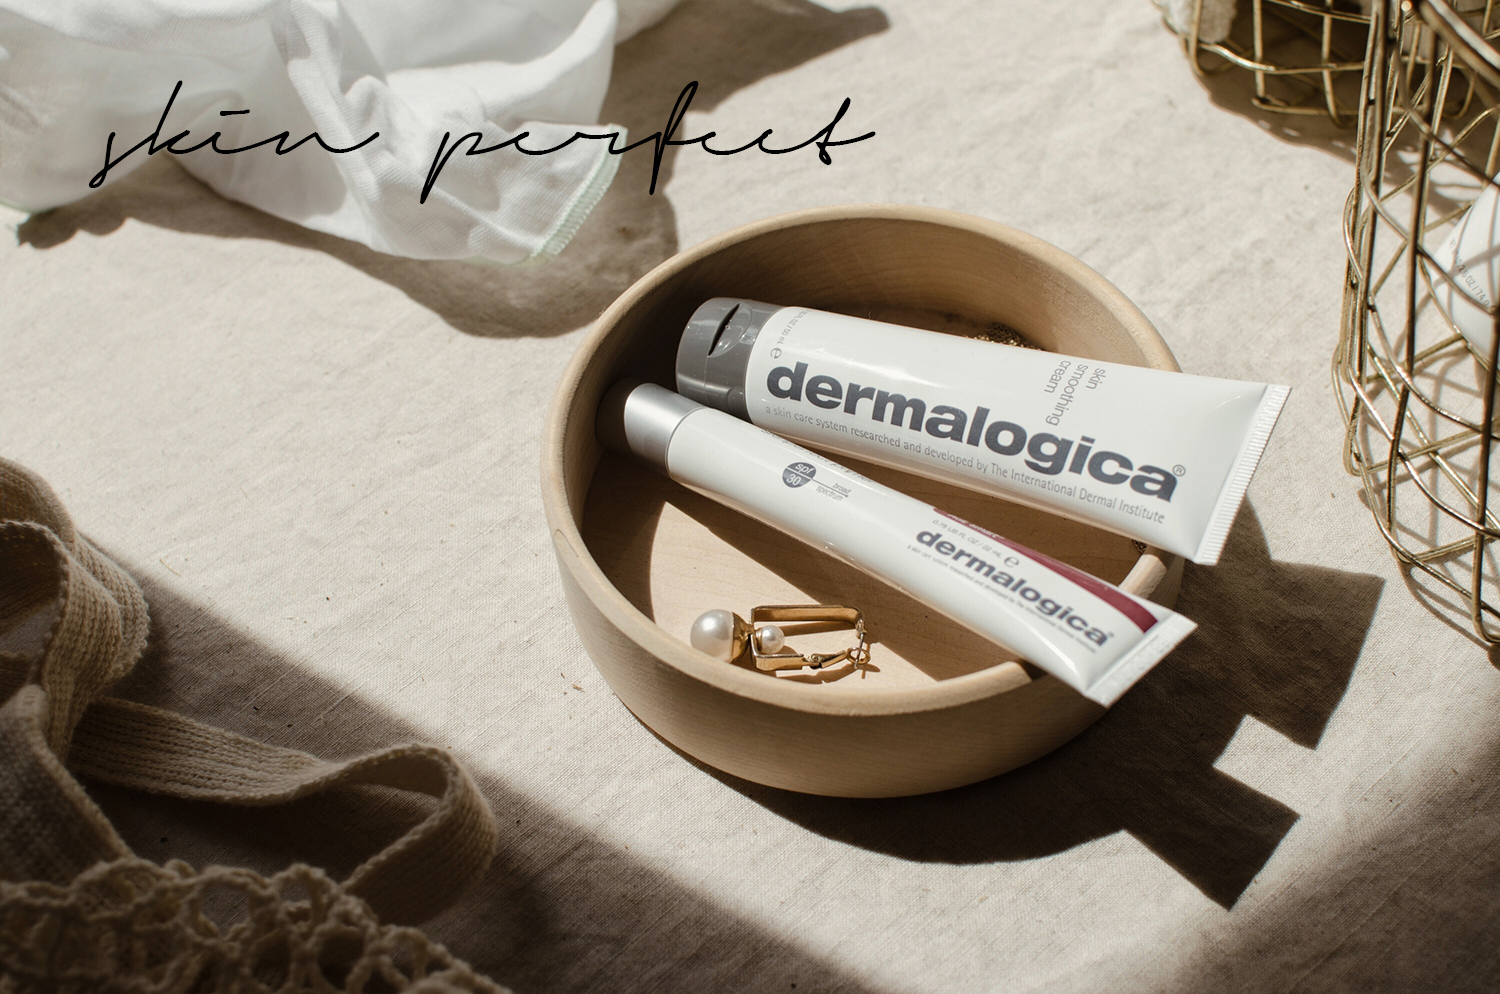 Dermalogica Review – New skincare staples?